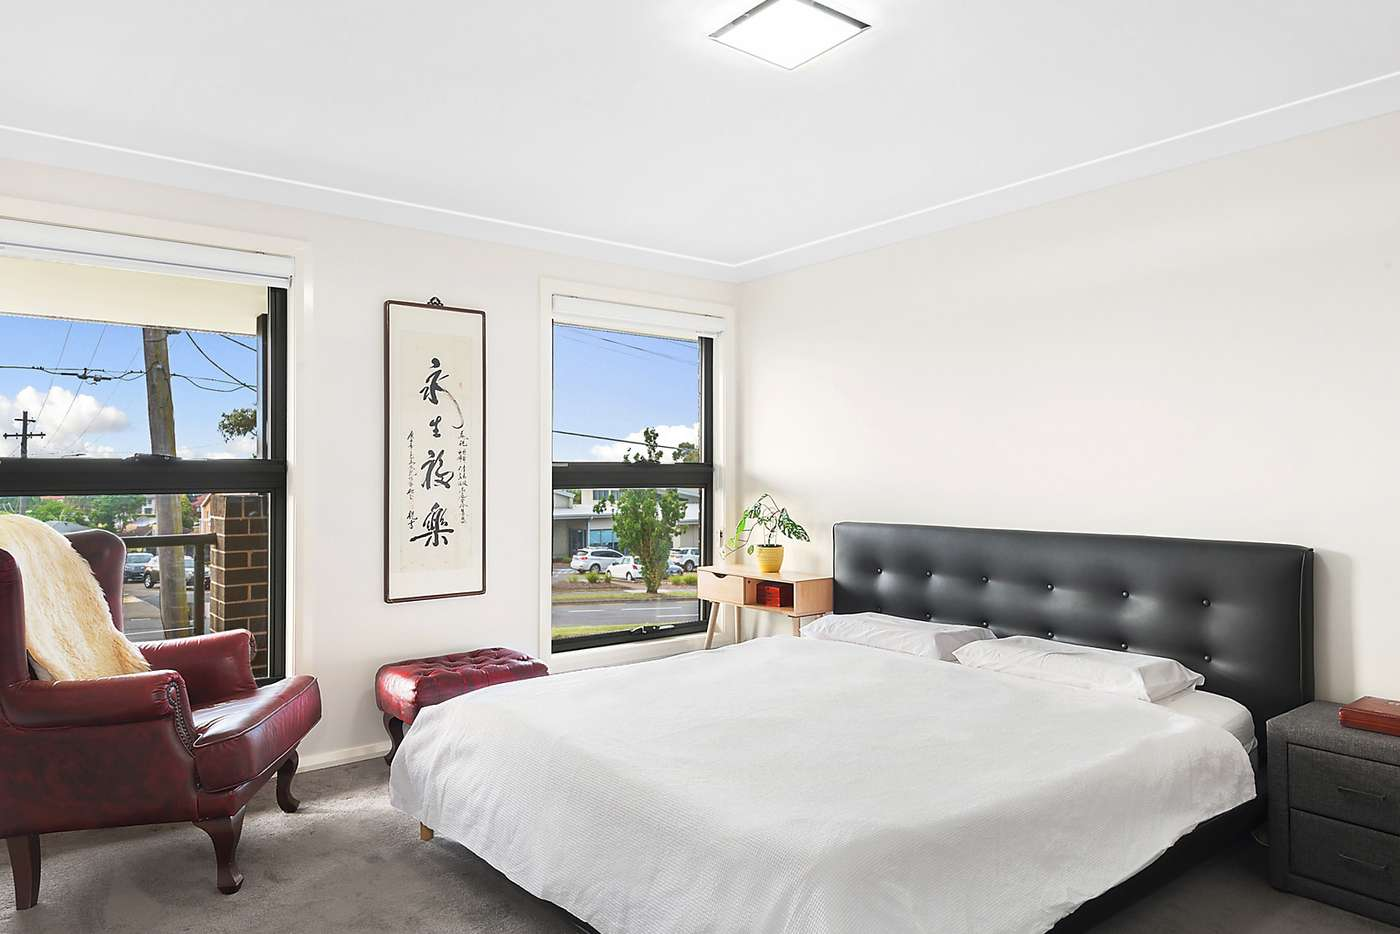 Fifth view of Homely house listing, 70 Lane Cove Road, Ryde NSW 2112